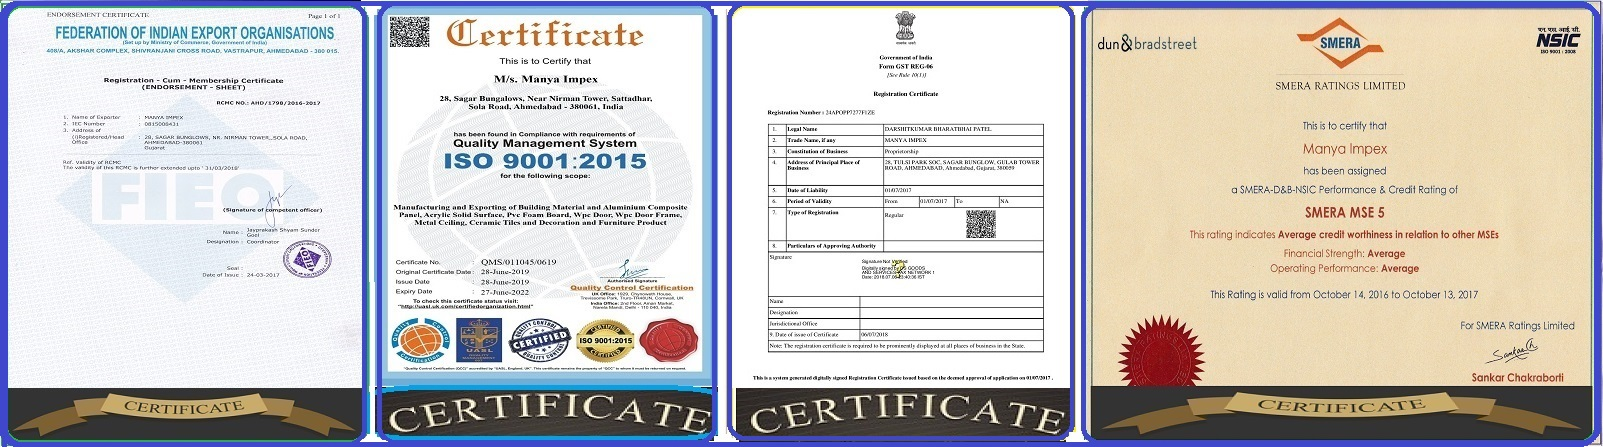 Our Company Certifiation